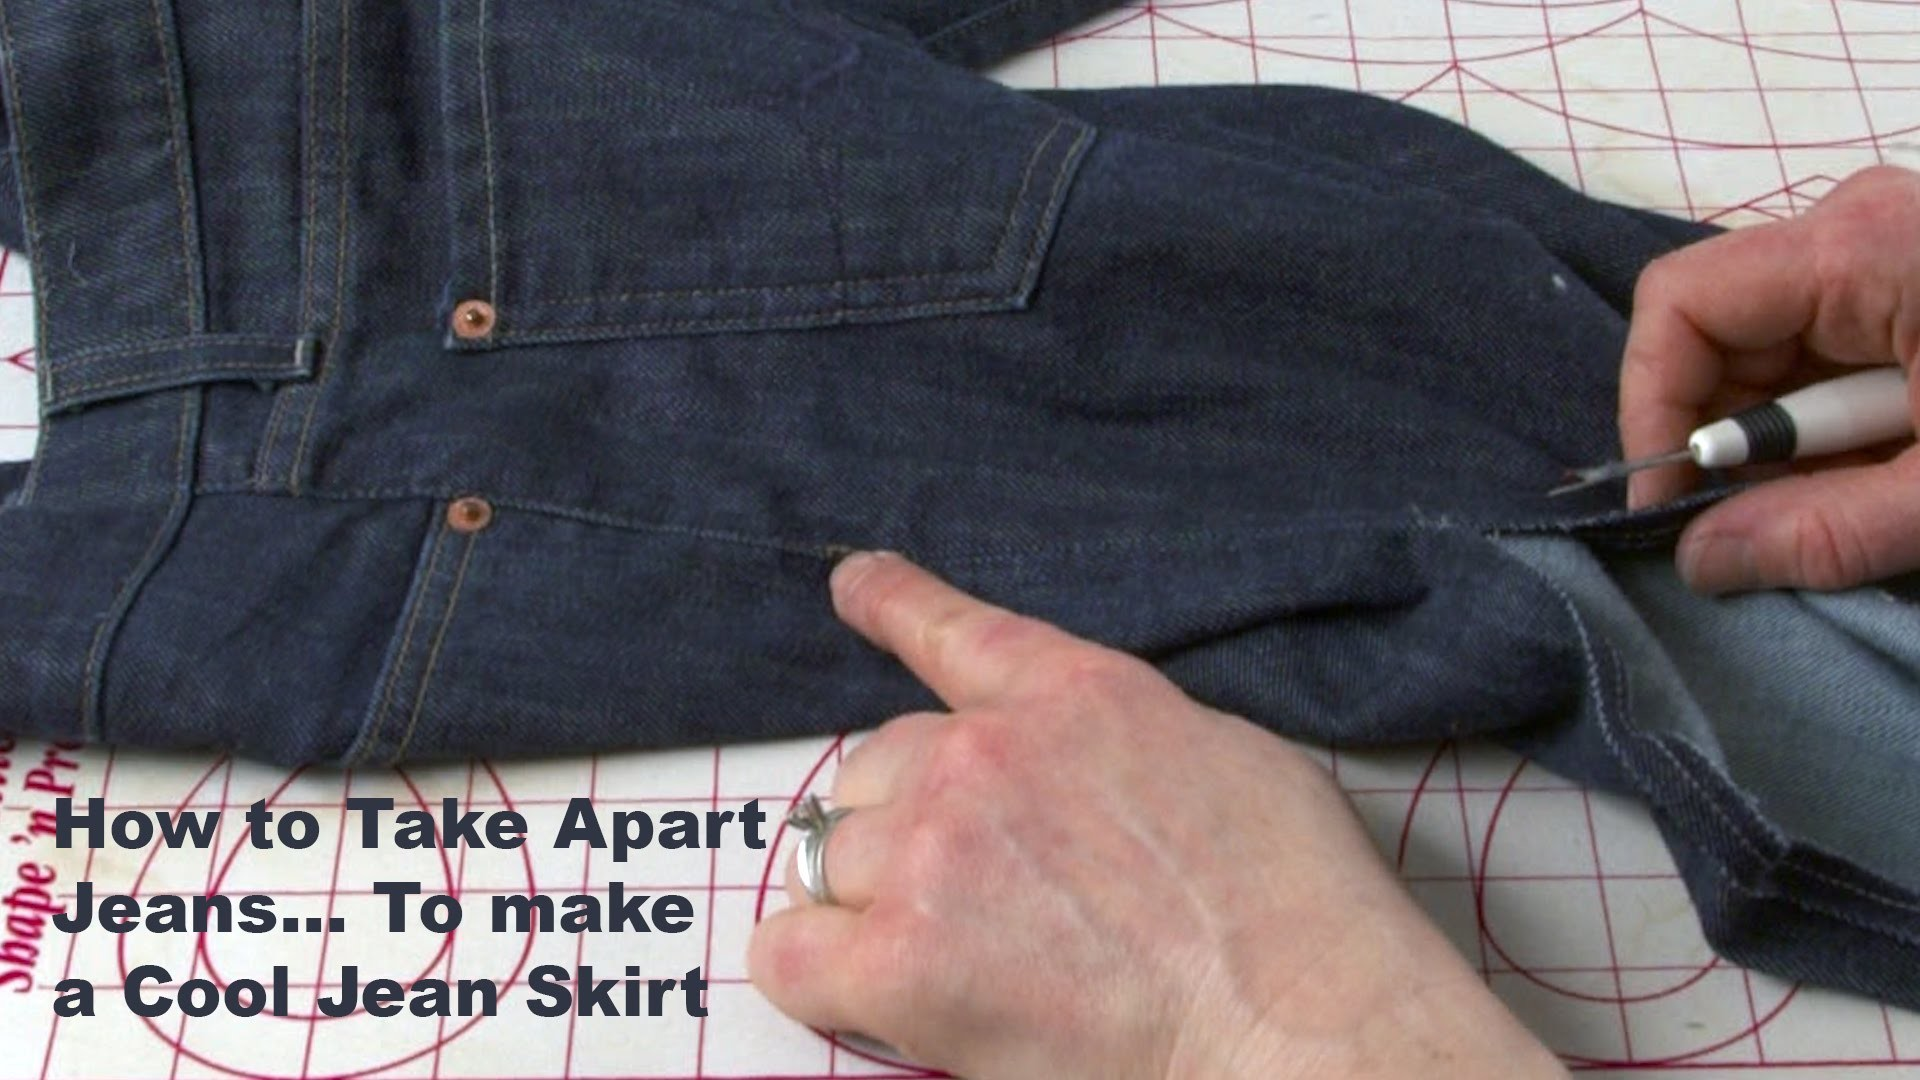 J Stern Designs l Quick Tip: How to Take Apart a Pair of Jeans . To Make a Jean Skirt